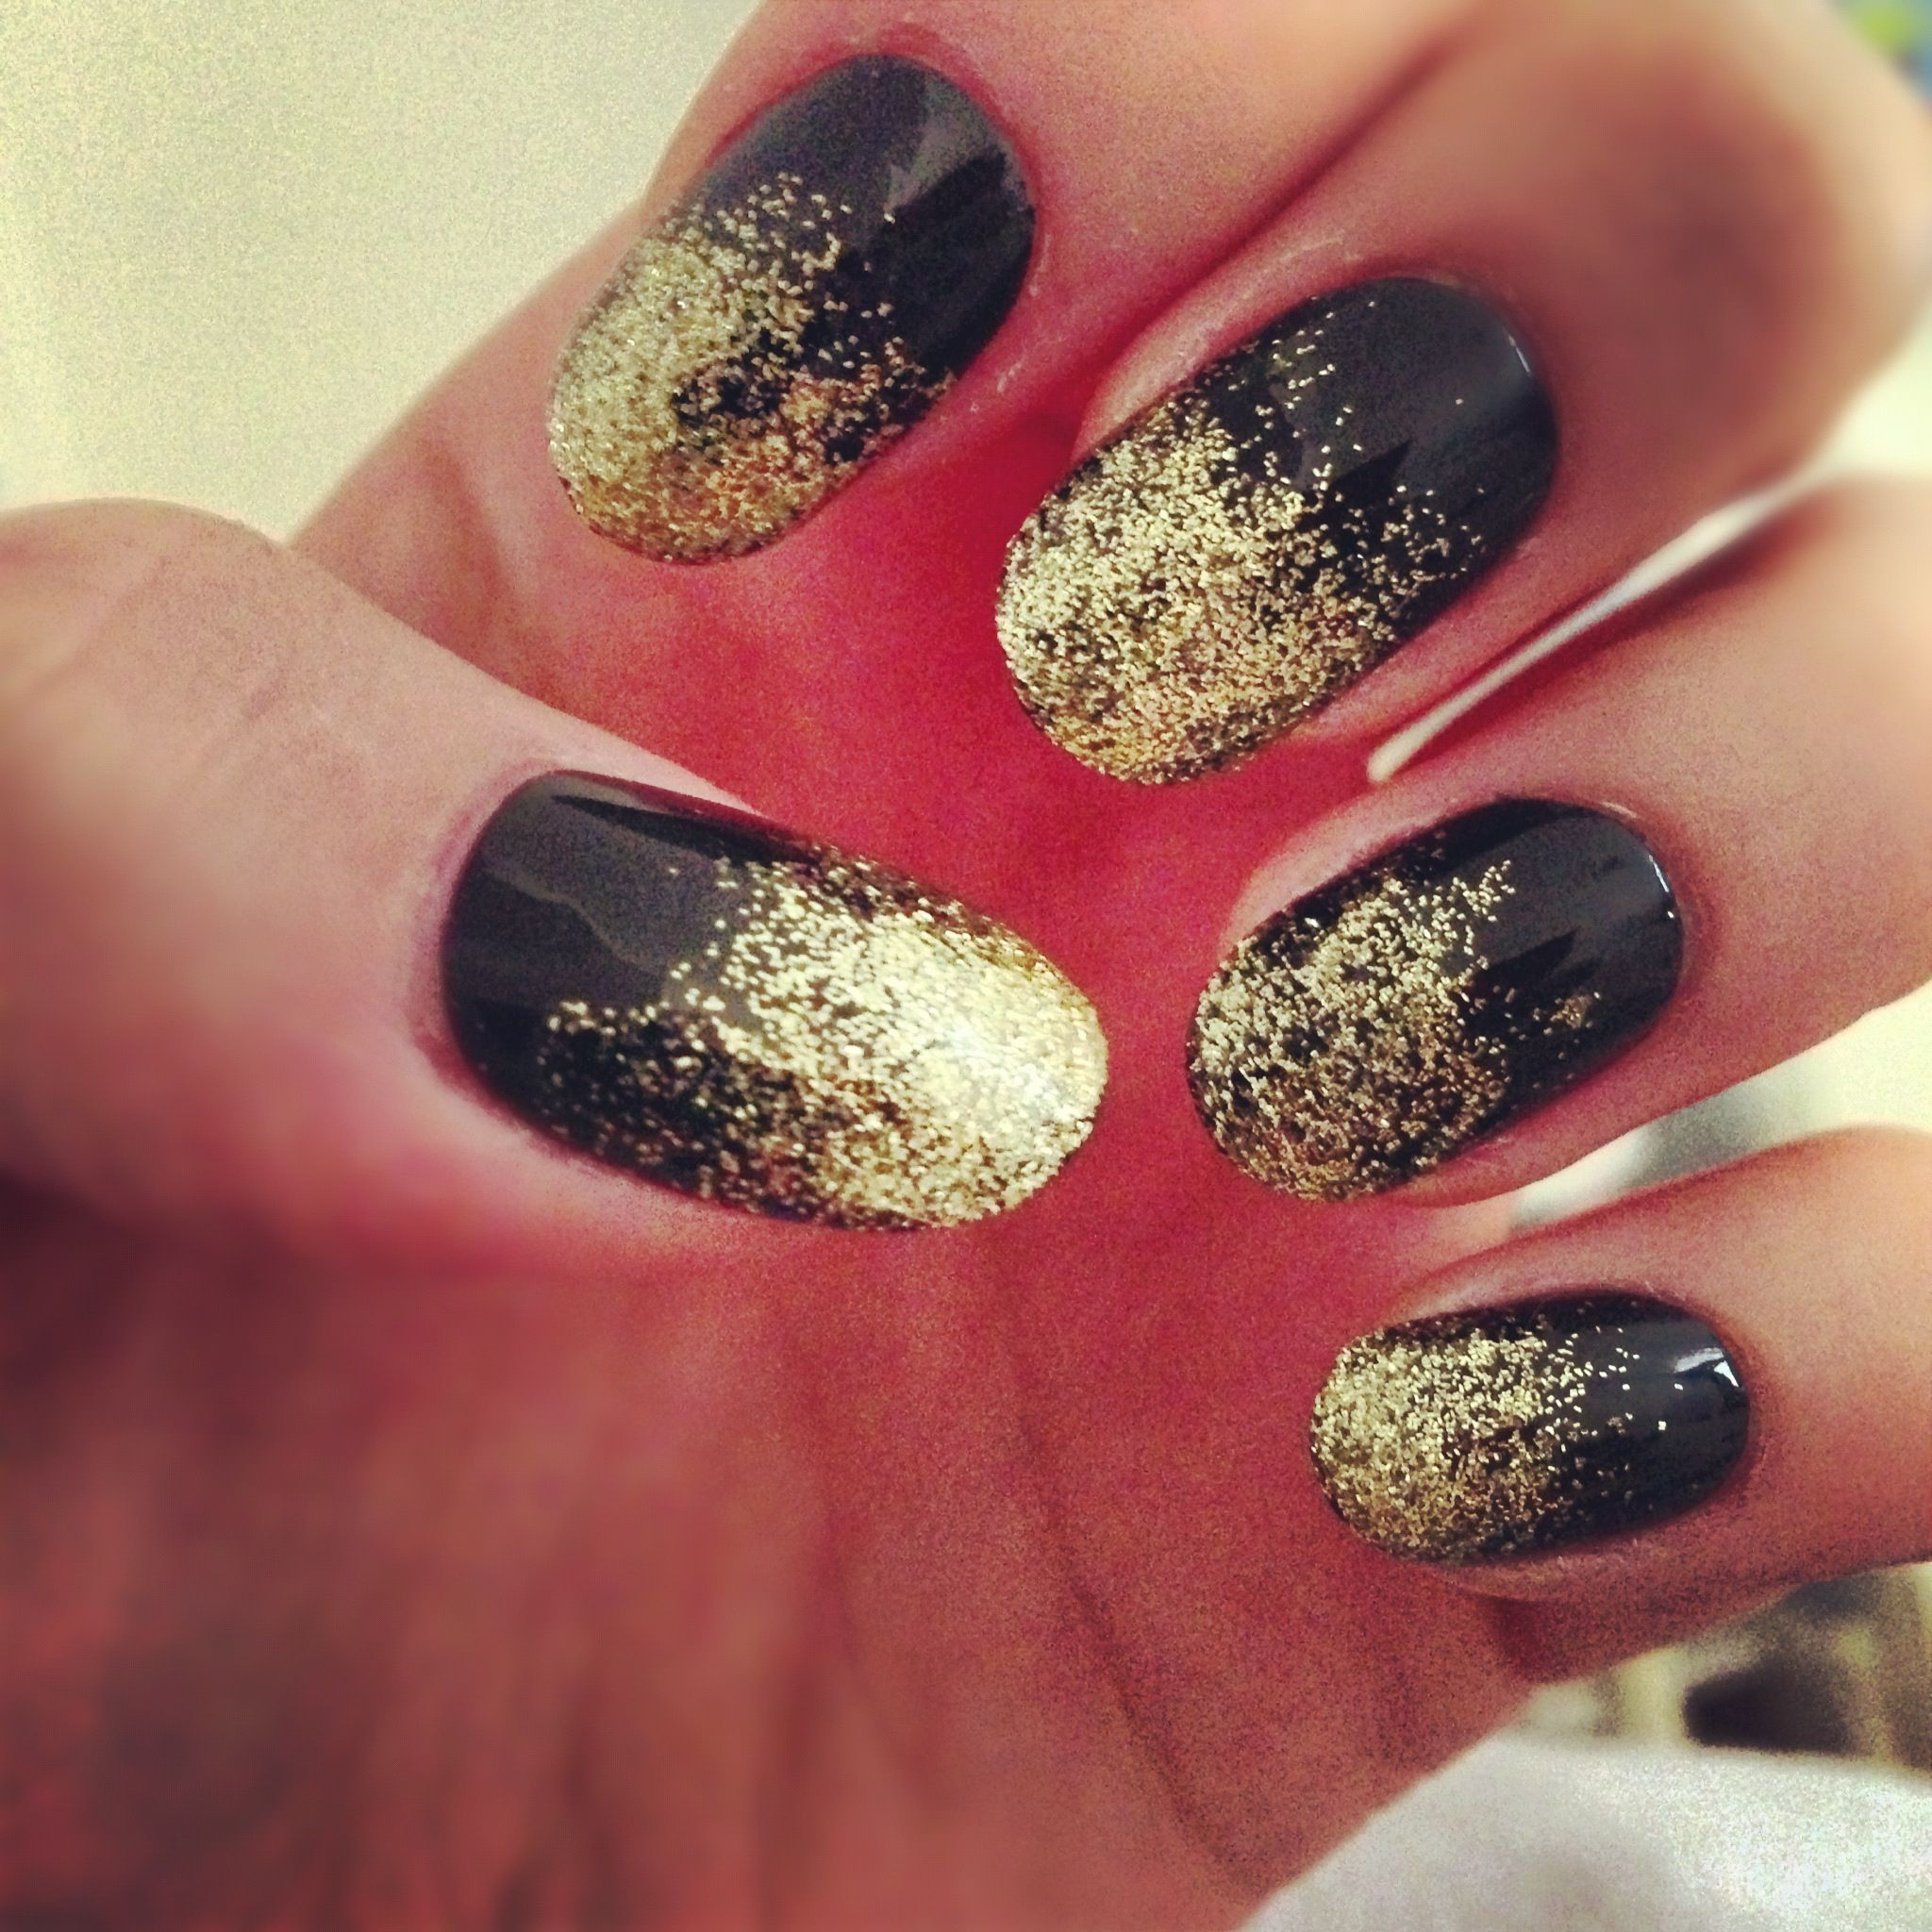 Nails On Ombre Art Nail Black Gold Glitter DIY Fade